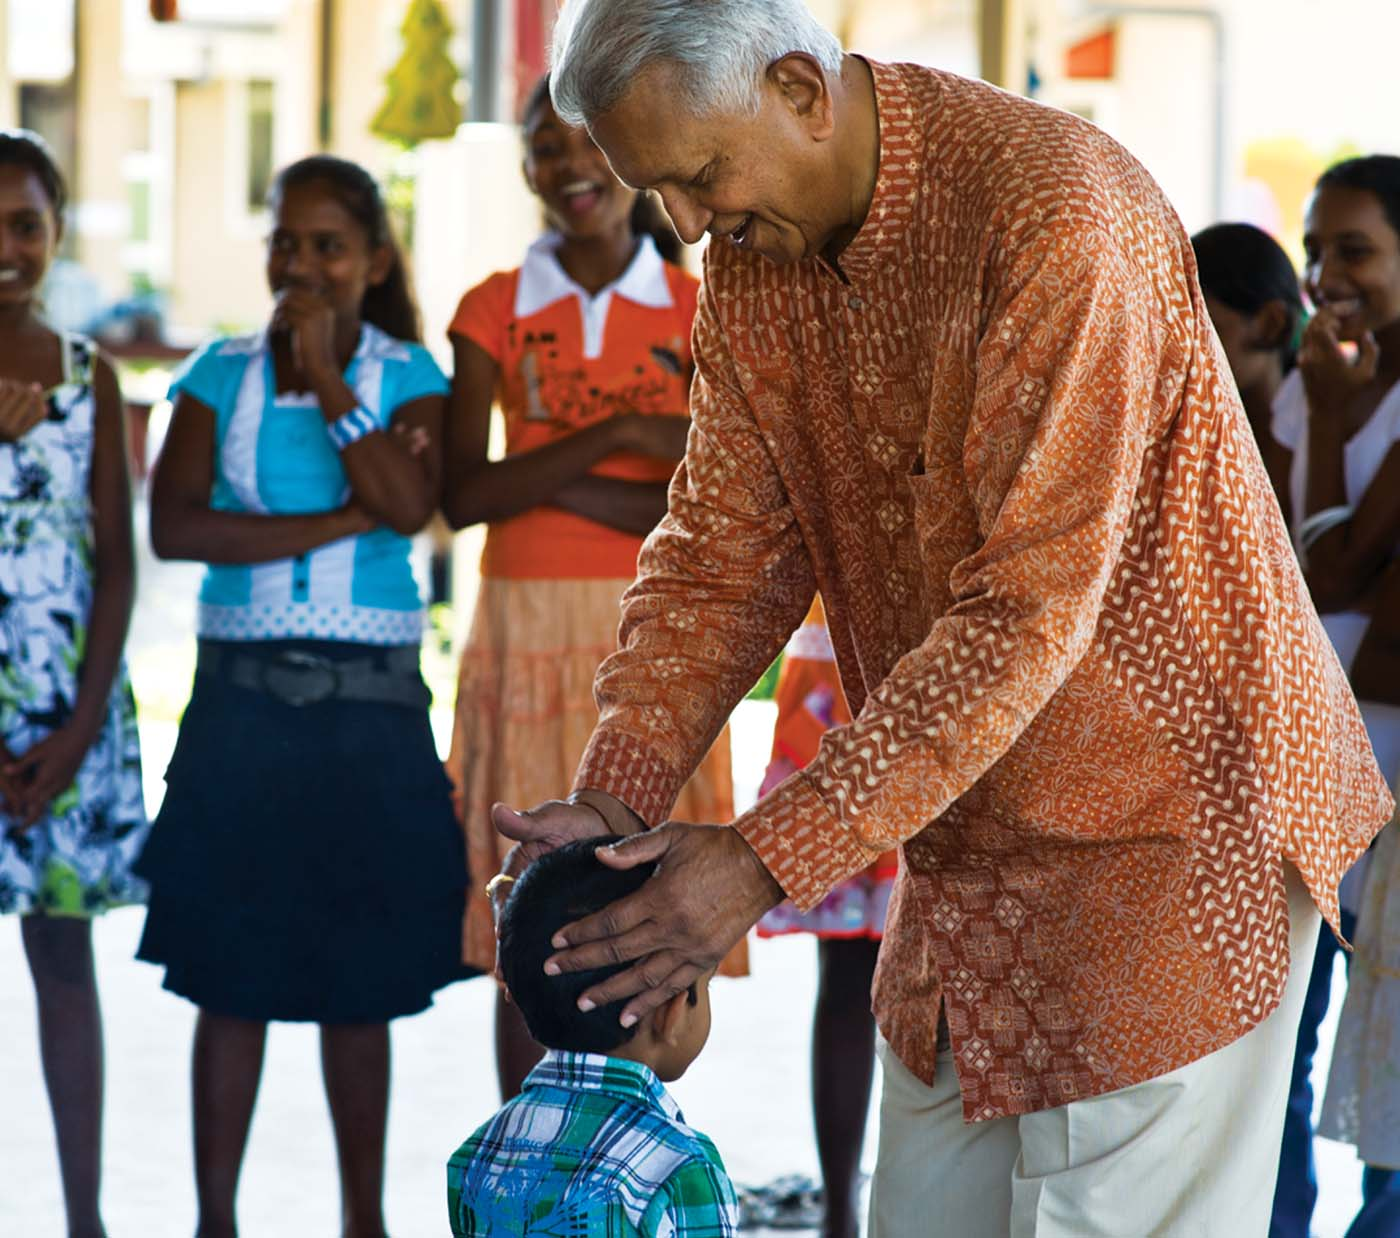 """The wellbeing of children is an important part of Dilmah's work"" Merrill J. Fernando, Settlorof the Merrill J. Fernando Charitable Foundation. The MJF Kids Programme supports over 750 children island wide with education and leadership training since 2006."